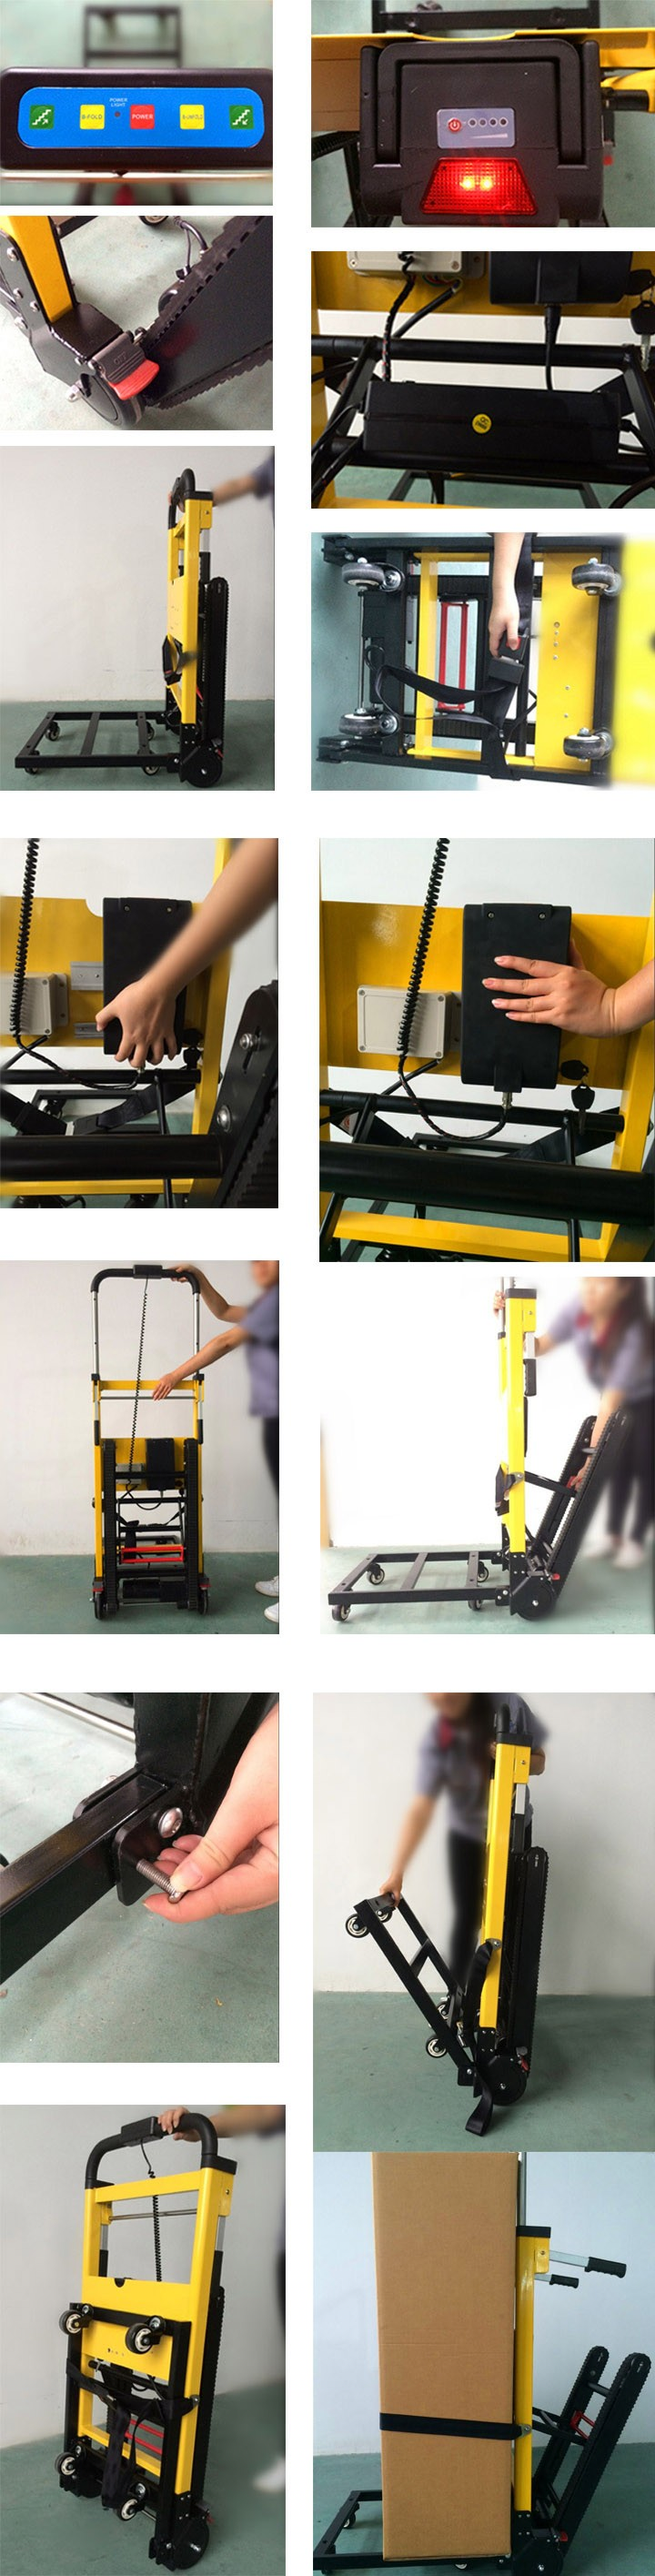 AEN-11A  electric stair climbing trolley foldable hand trolley